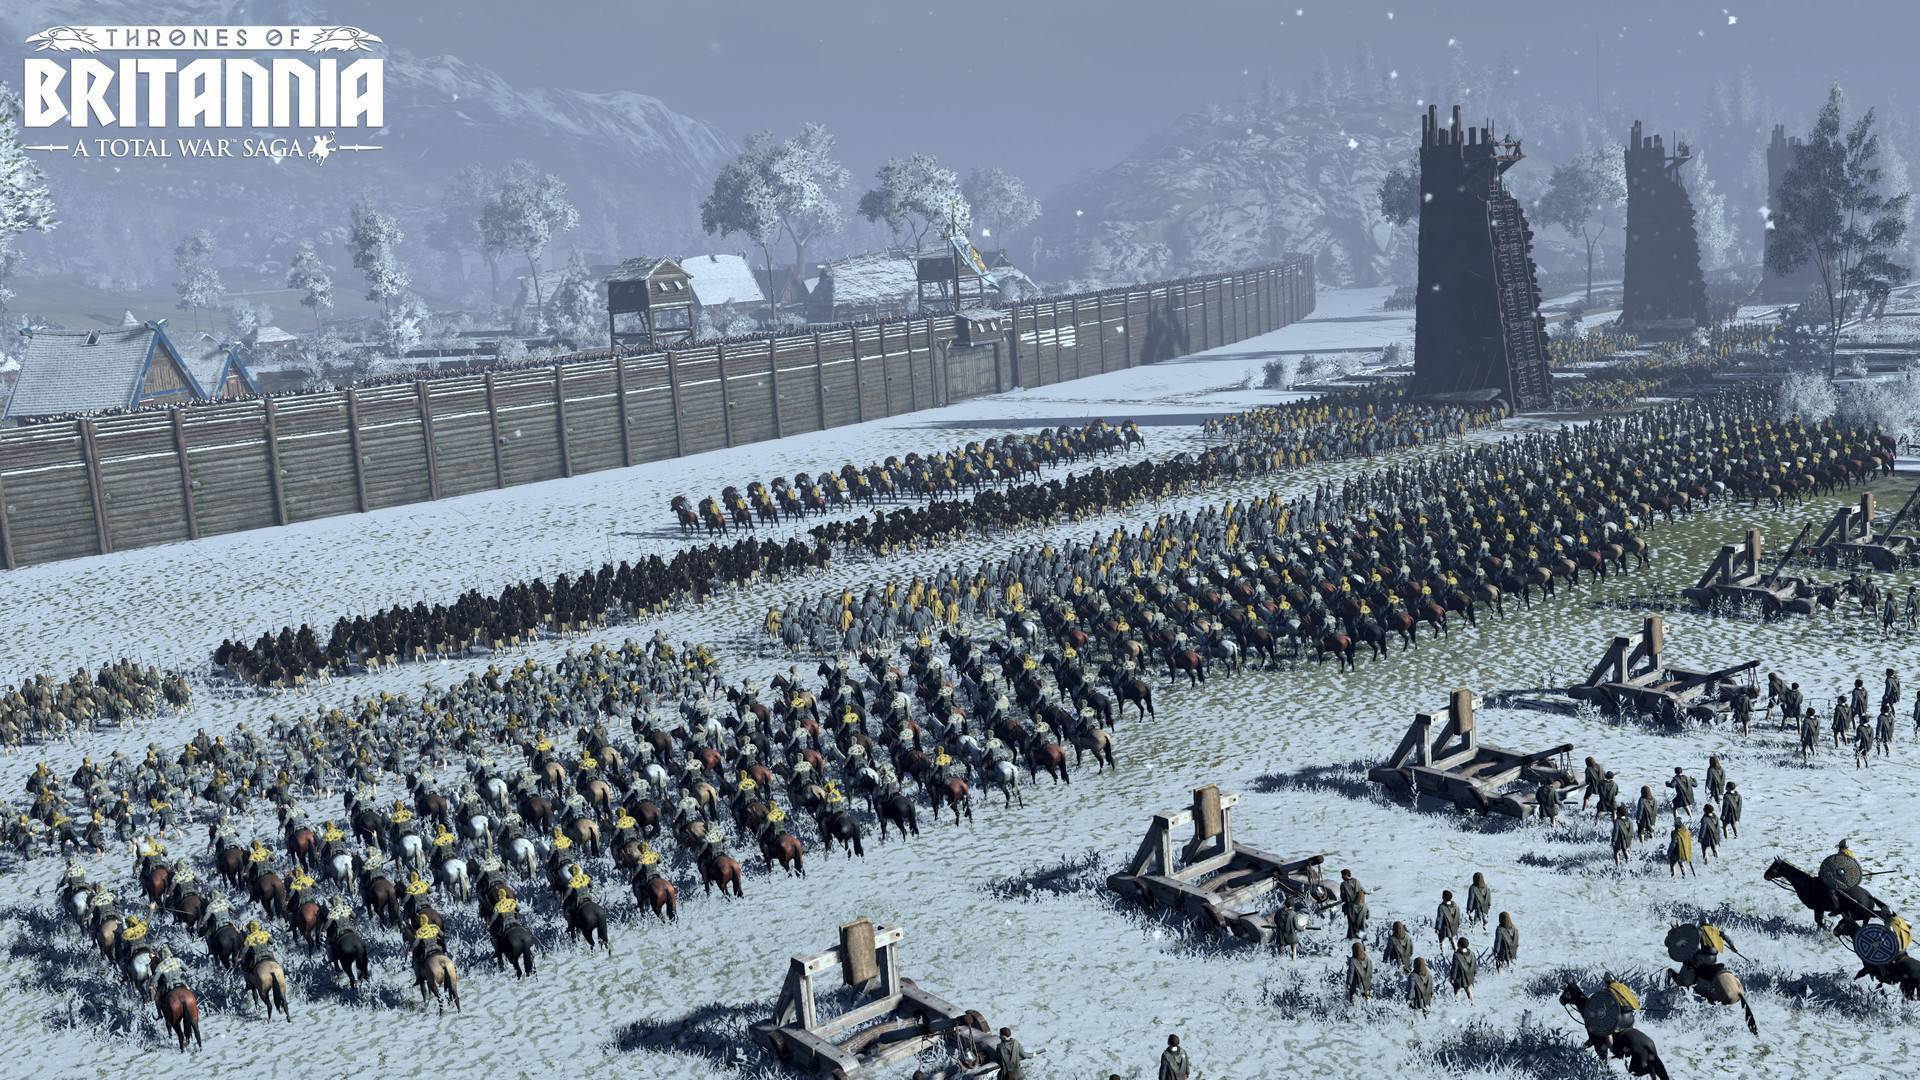 Article title about Total War Saga: Thrones of Britannia